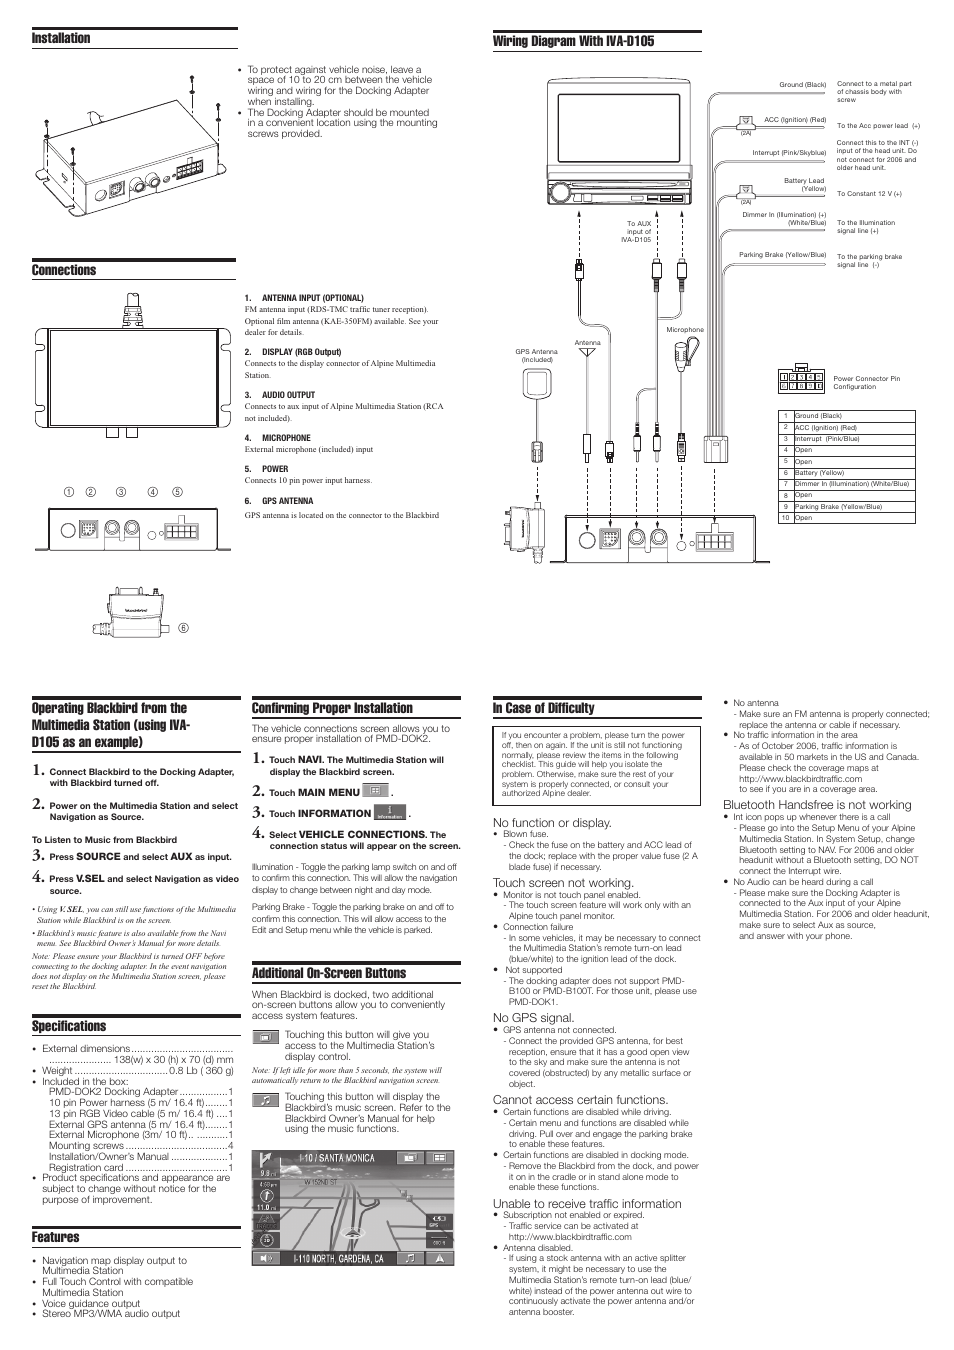 [SCHEMATICS_48ZD]  Connections, Wiring diagram with iva-d105, Specifications | Alpine  Blackbird Docking Adapter PMD-DOK2 User Manual | Page 2 / 2 | Original mode | Alpine Navigation Wiring Diagram |  | Manuals Directory